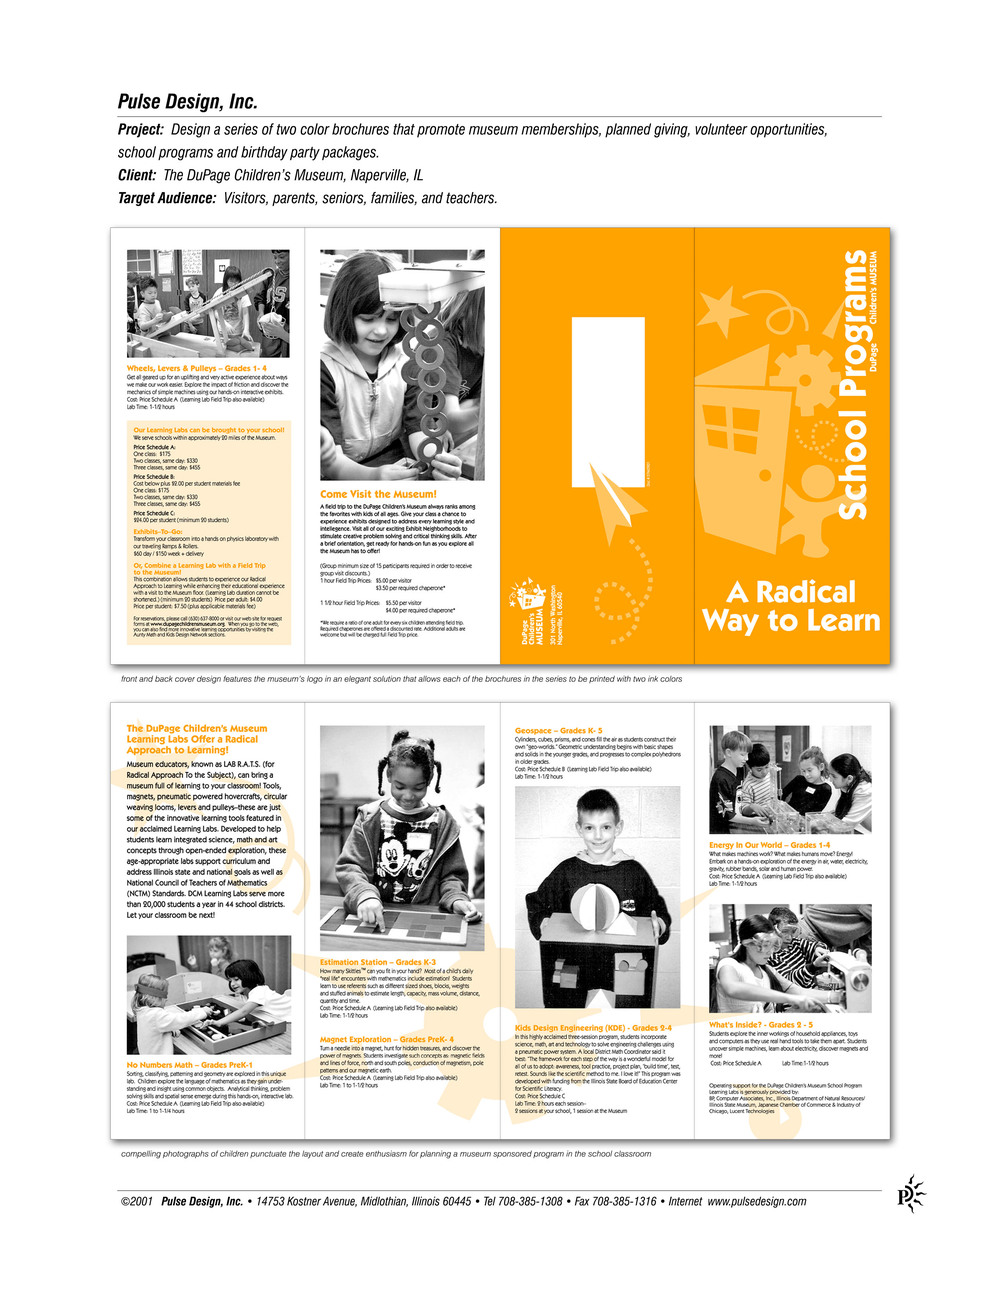 DCM-Brochure-2Color-Programs-Pulse-Design-Inc.jpg